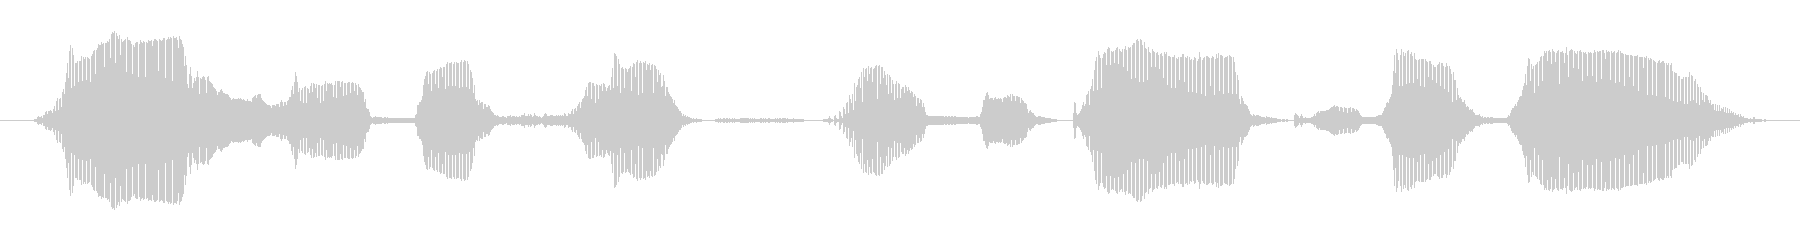 """6 year old girl """"Happy New Year""""'s unreproduced waveform"""